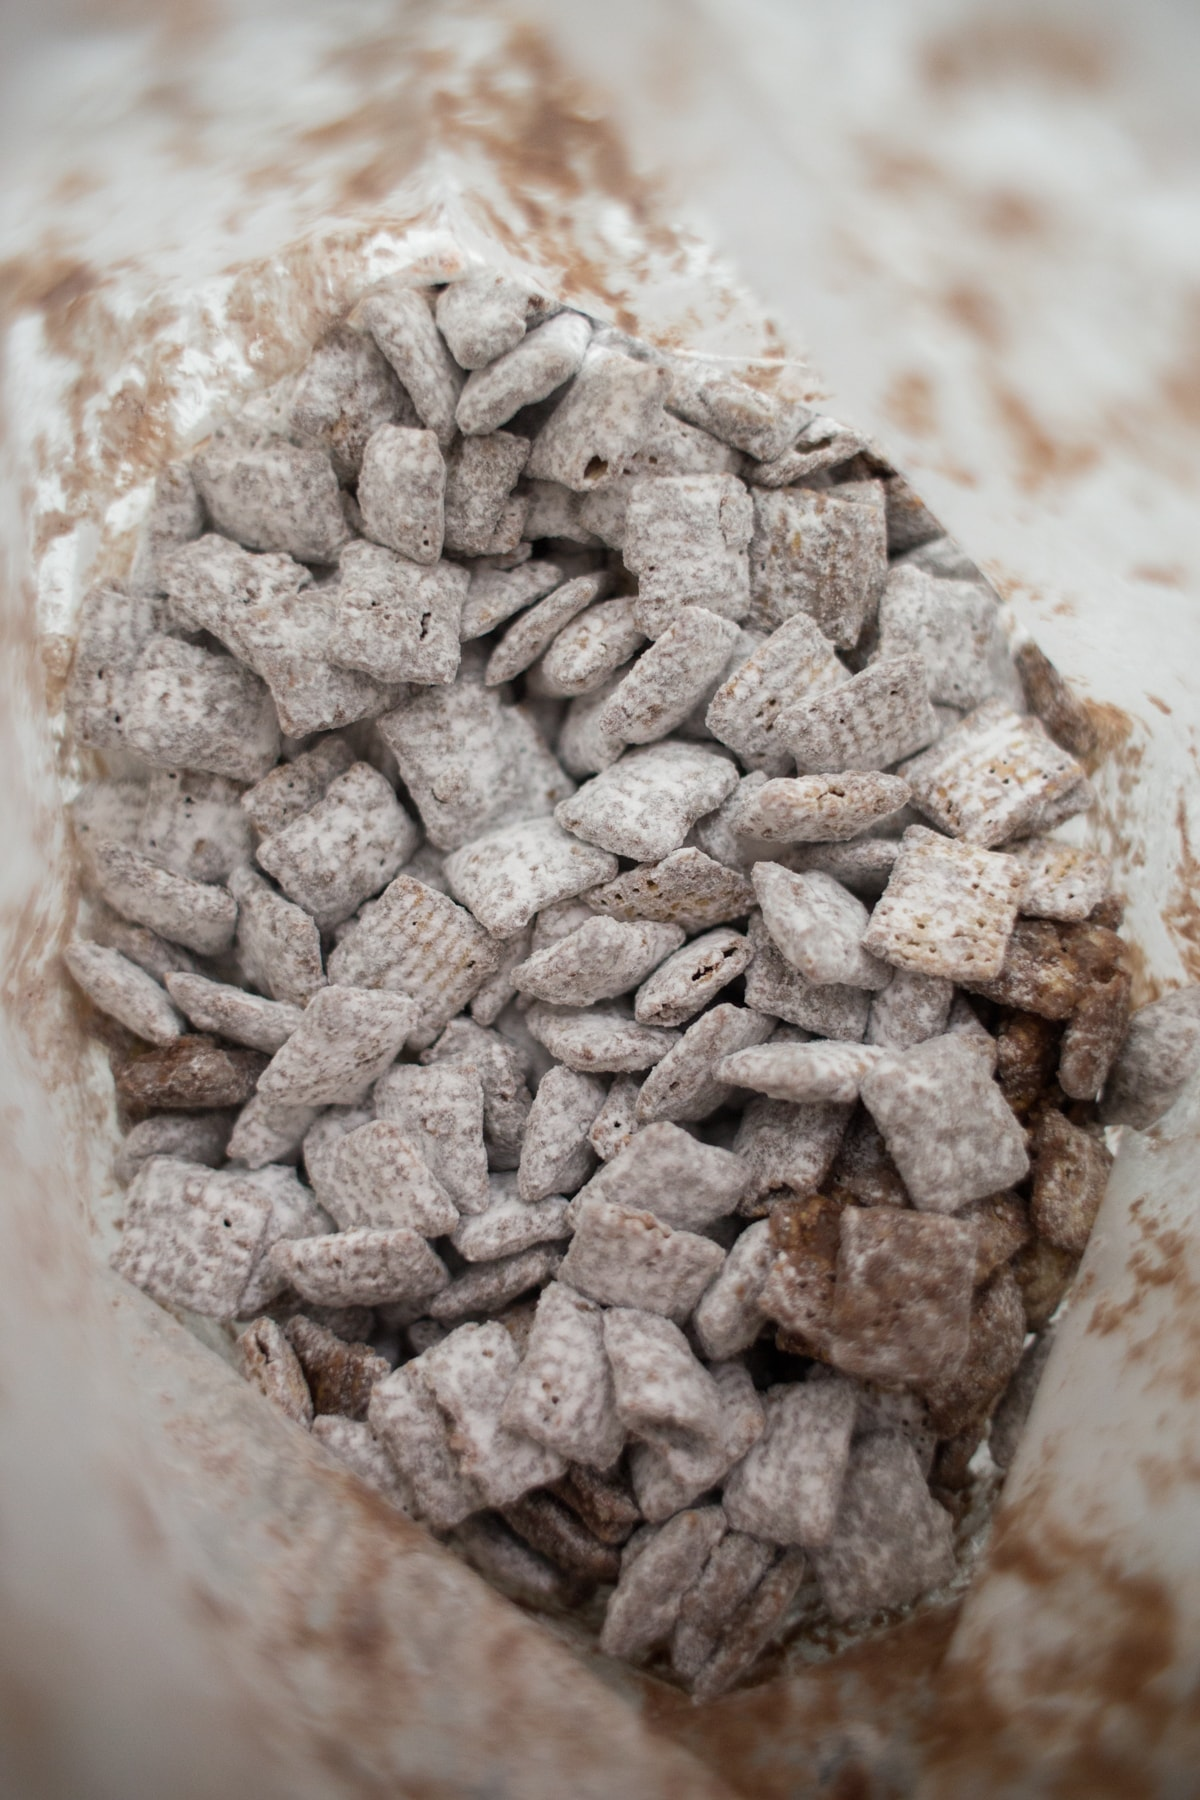 Puppy chow in a bag